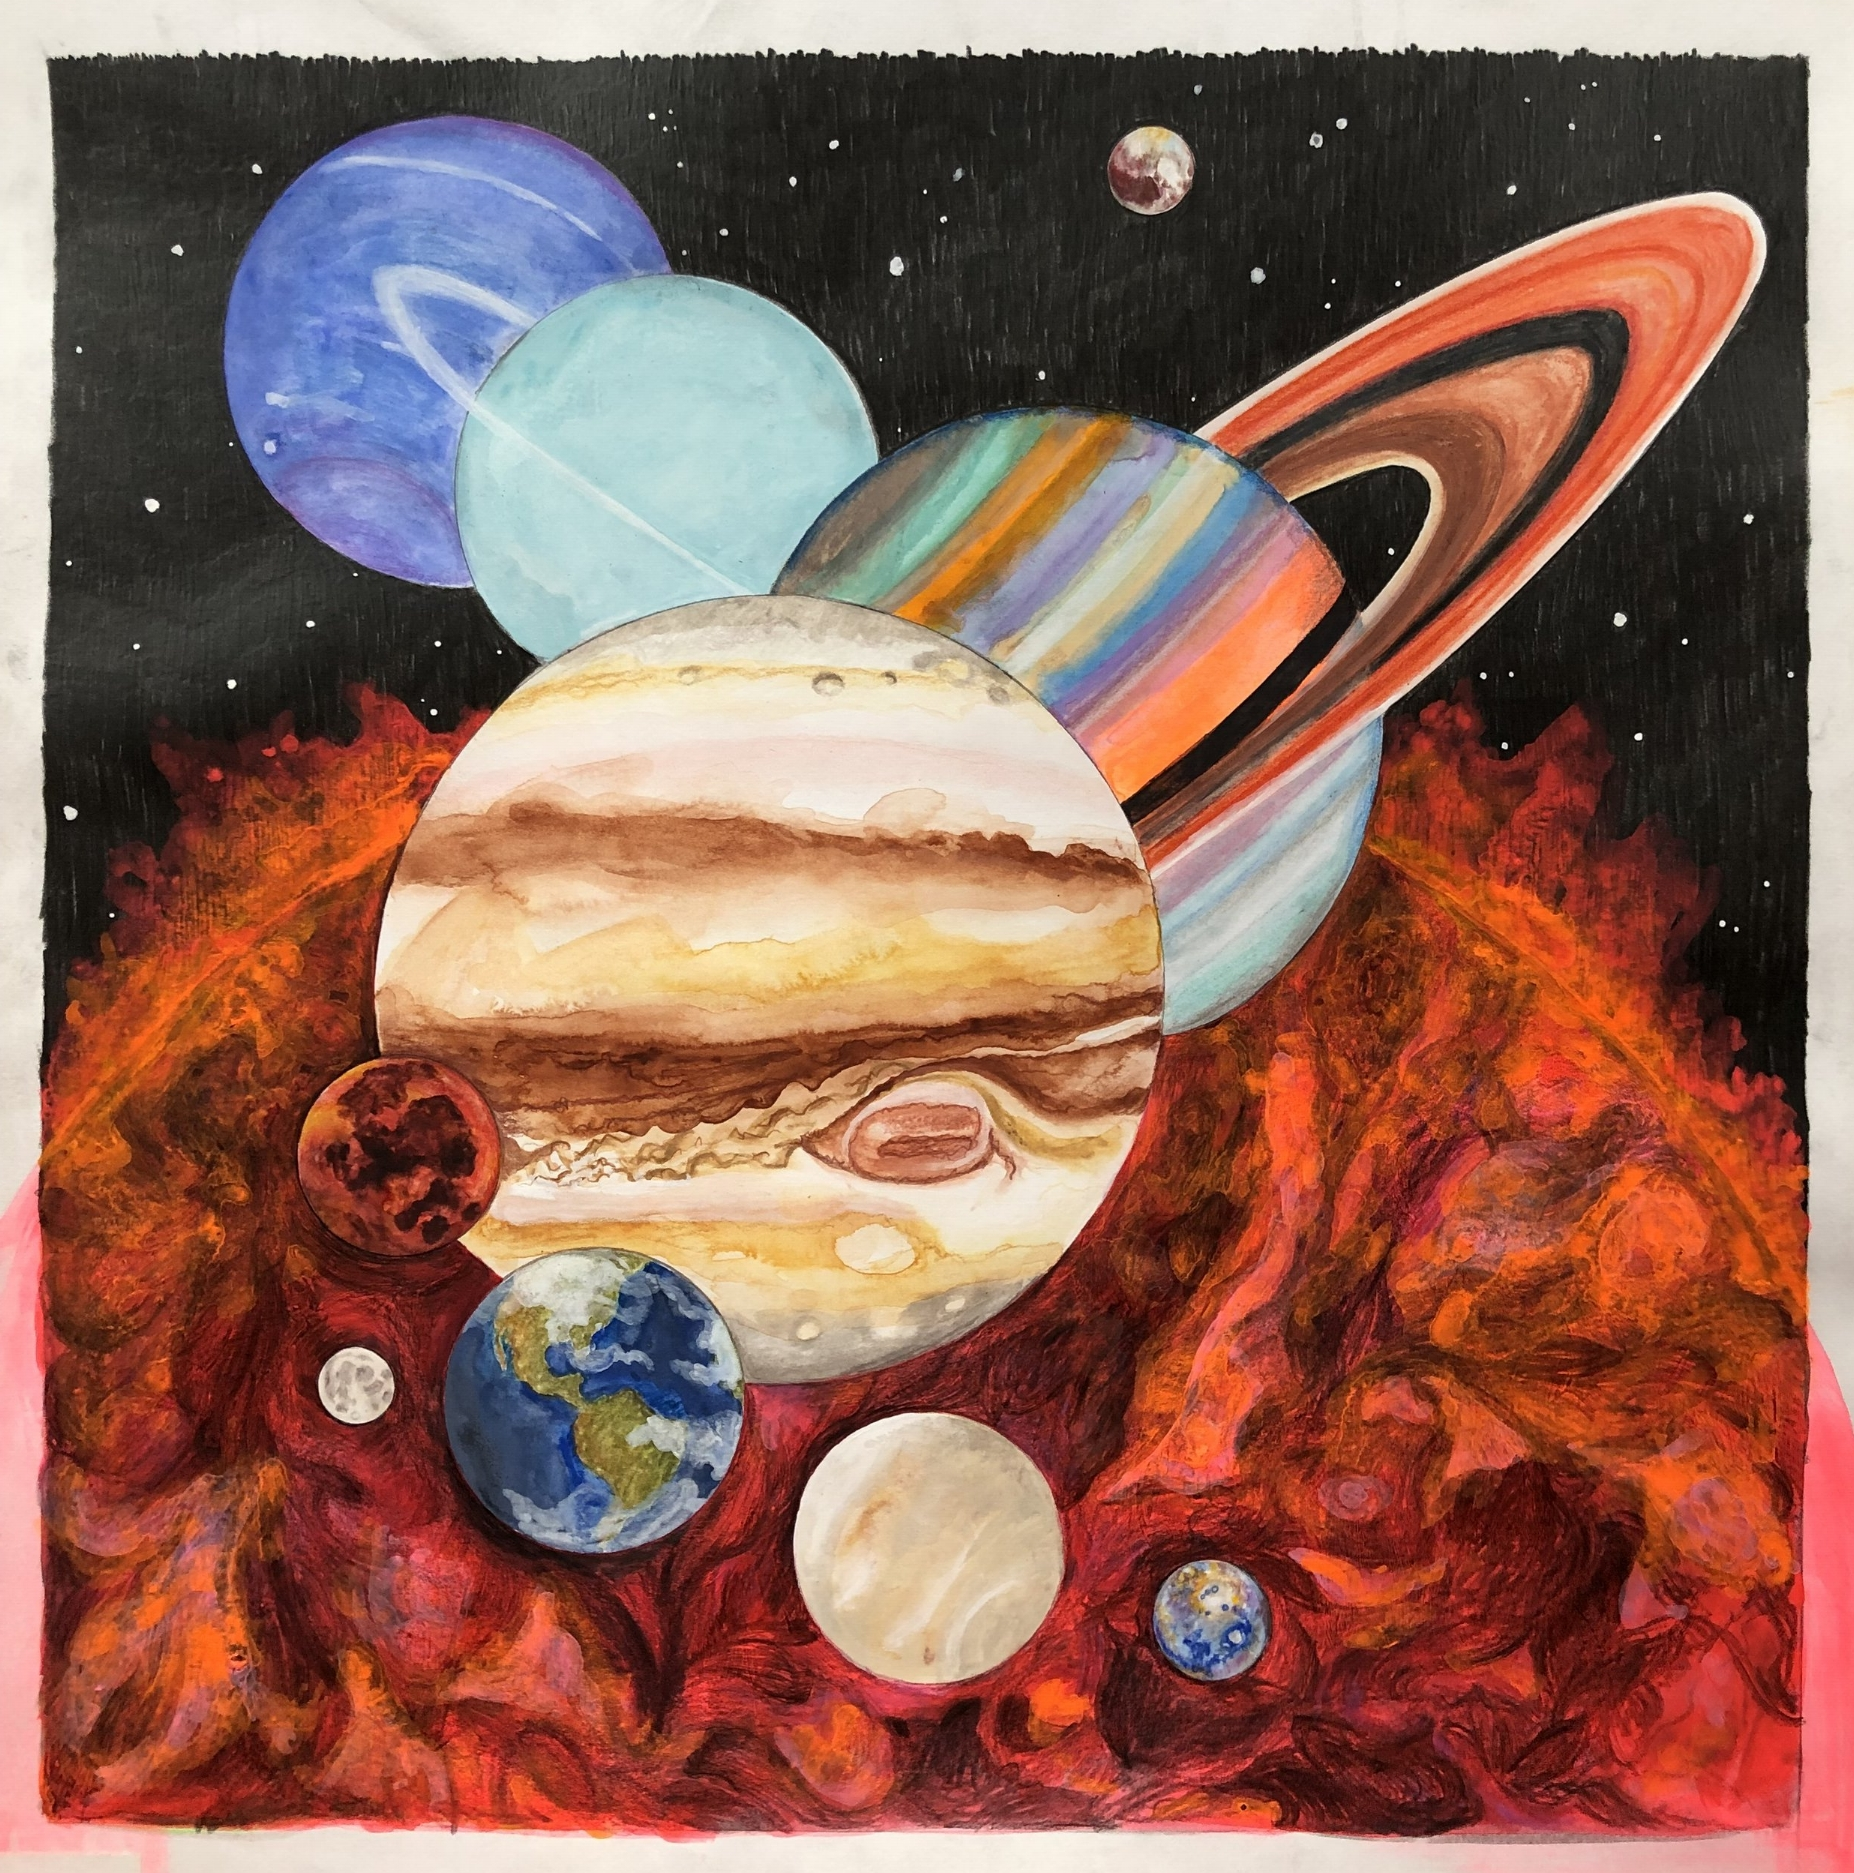 Original album cover artwork for Planetarium feat. Sufjan Stevens/Bryce Dessner/Nico Muhly/James McAllister